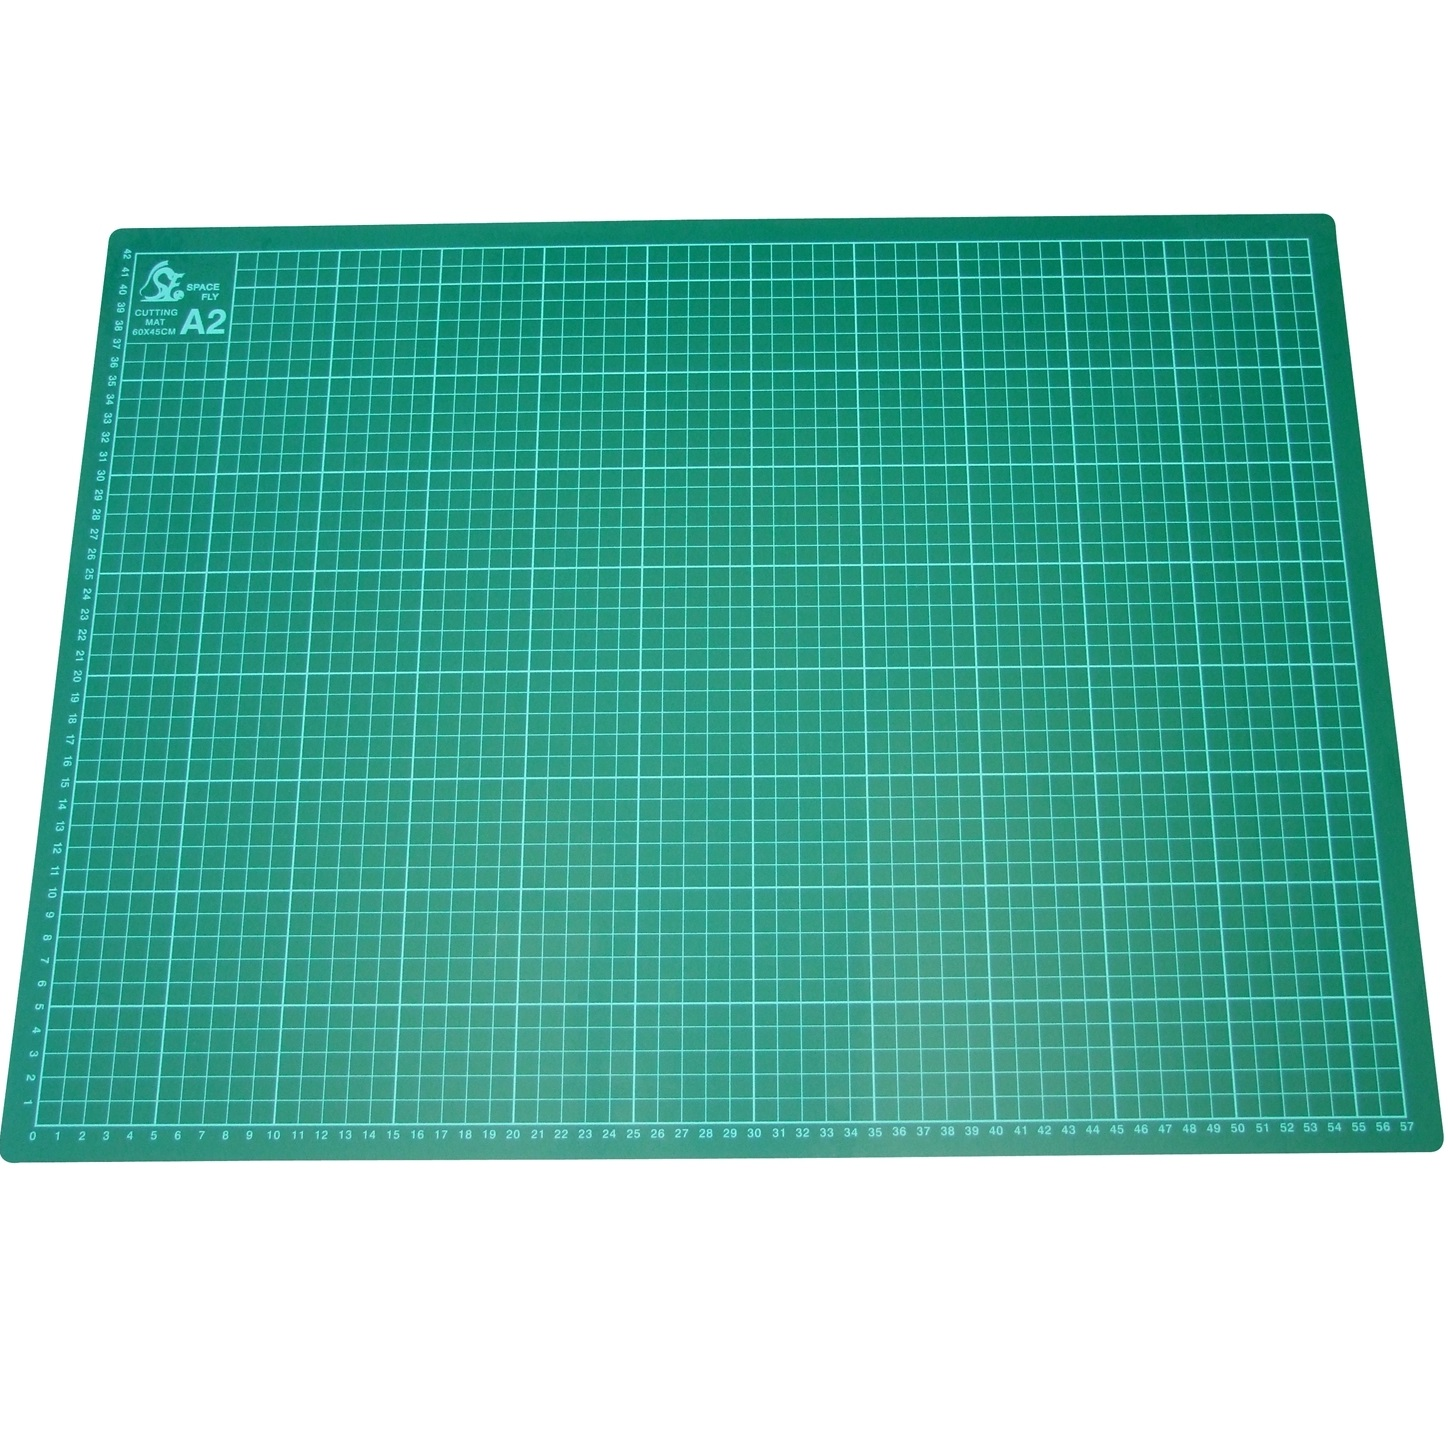 cutting mat stock converging of lines healing with templates on green focus online picture abstract grid self white